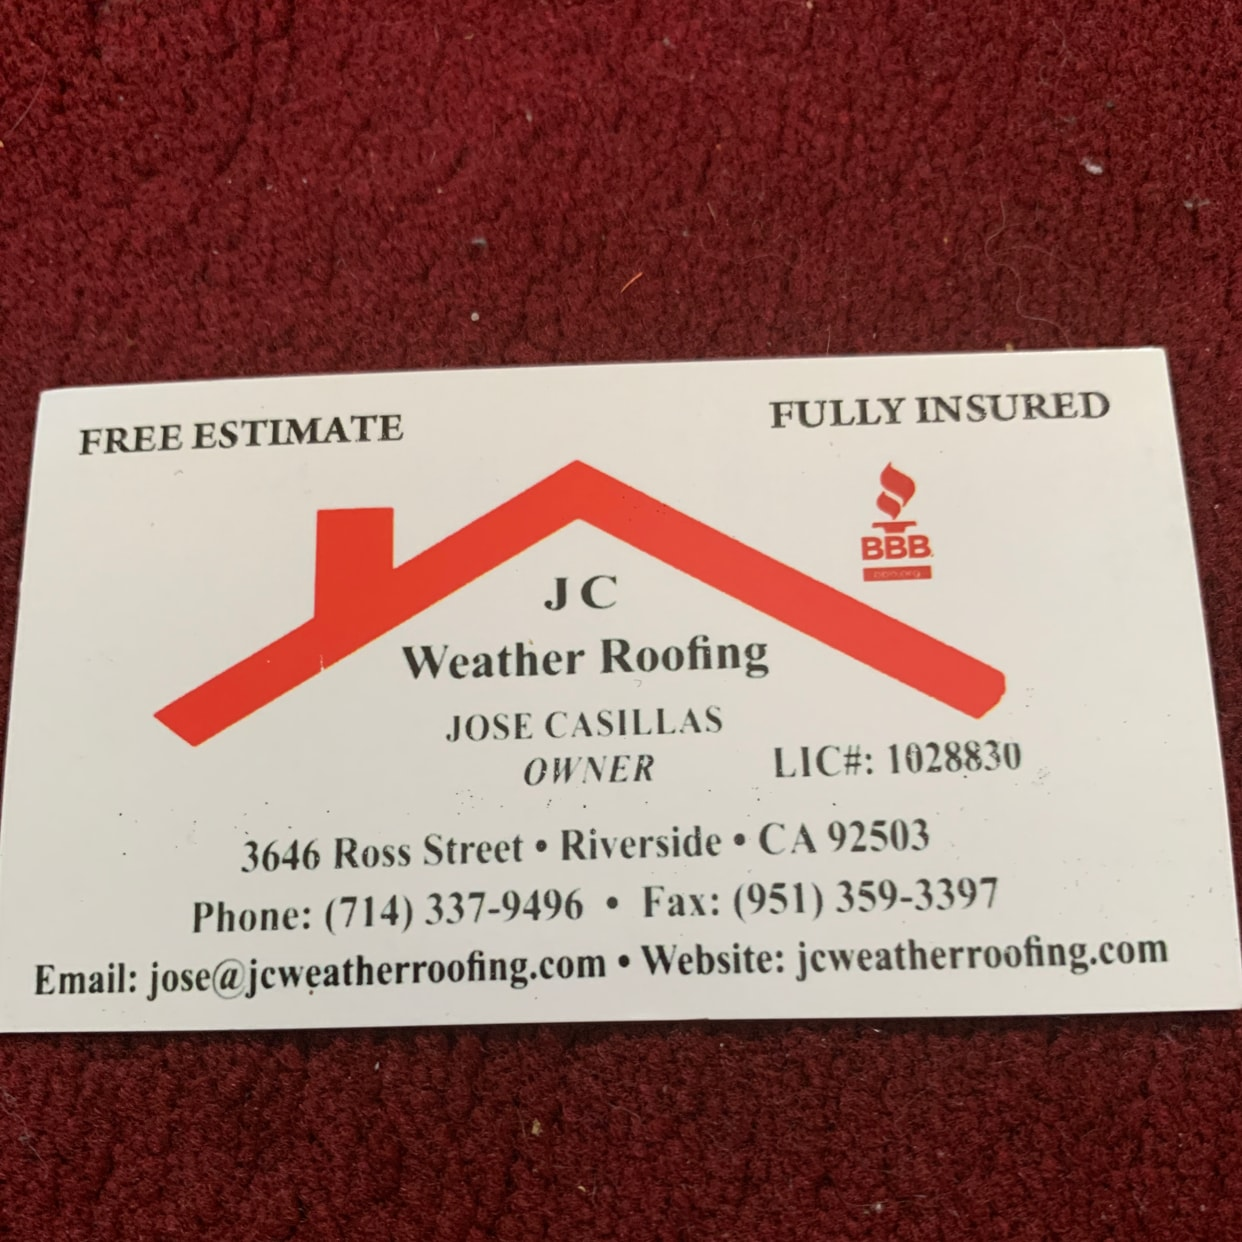 J C Weather Roofing